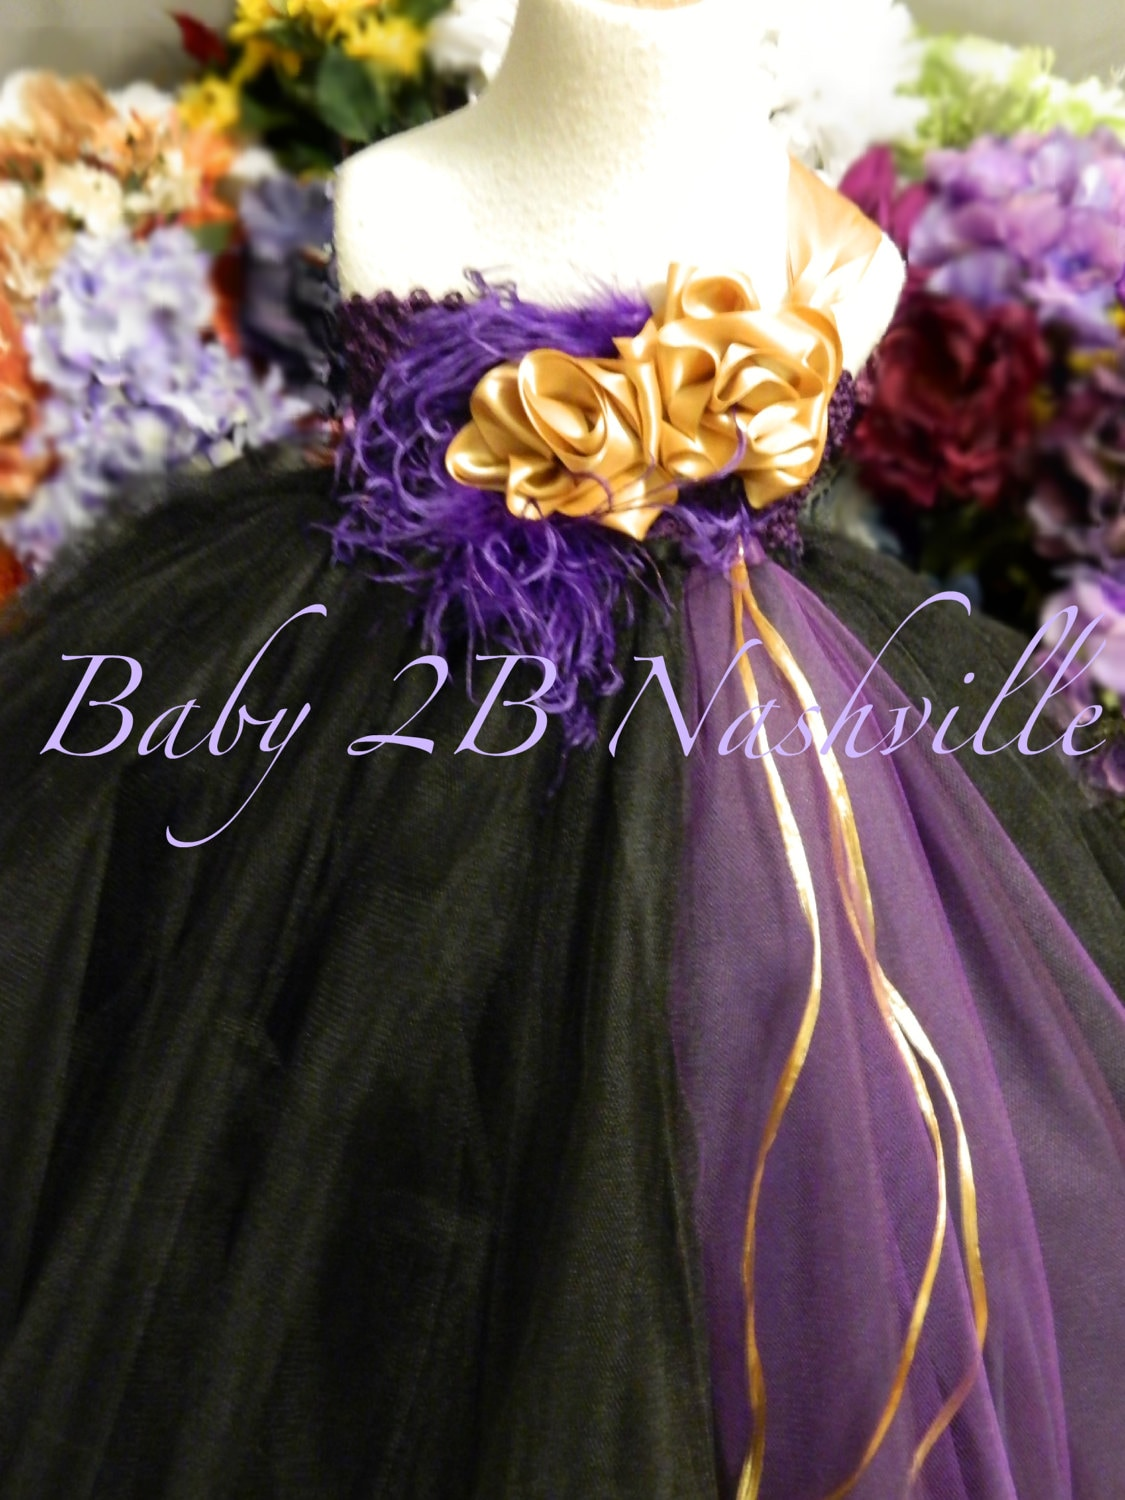 d454b693a Gold Flower Girl Dress Tulle Dress Tutu Dress Black Dress Purple Baby Dress  Toddler Dress Wedding Dress Party Dress Plum Baby Dress